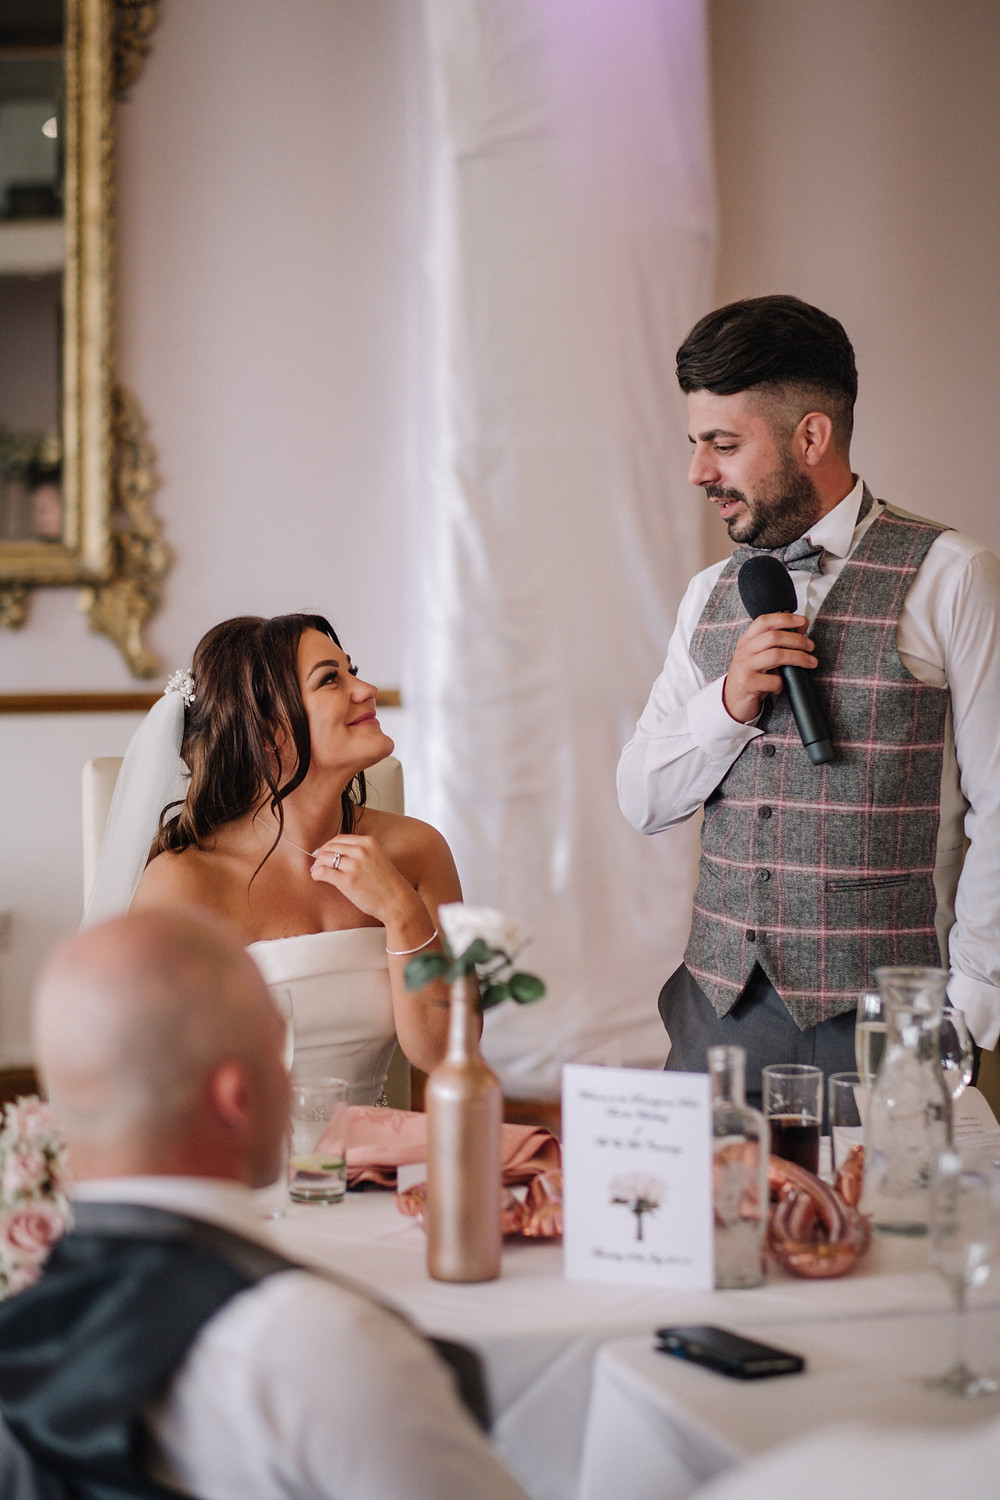 The Groom's Speech, captured by Nessworthy Photography